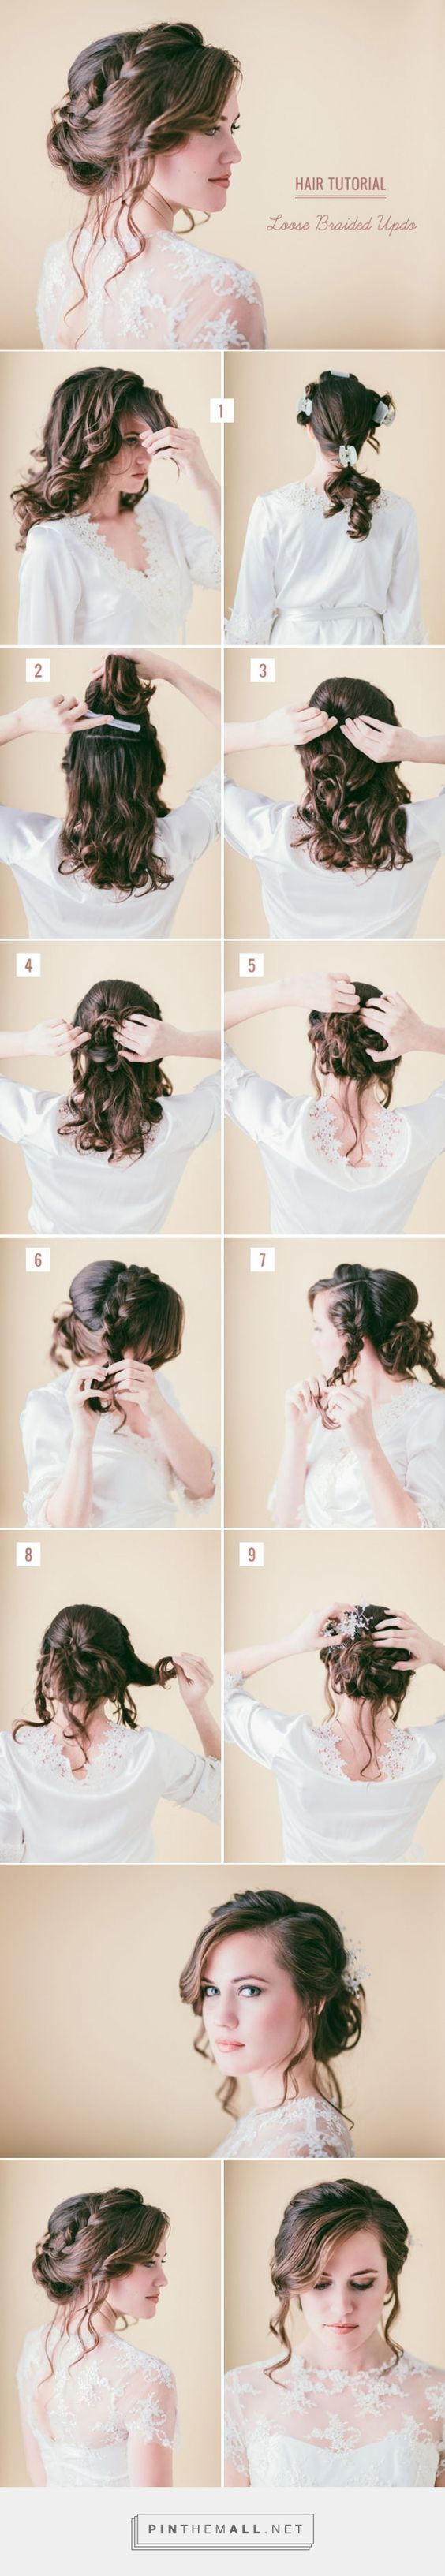 13 best Hair Do images on Pinterest | Cute hairstyles, Hairstyle ...